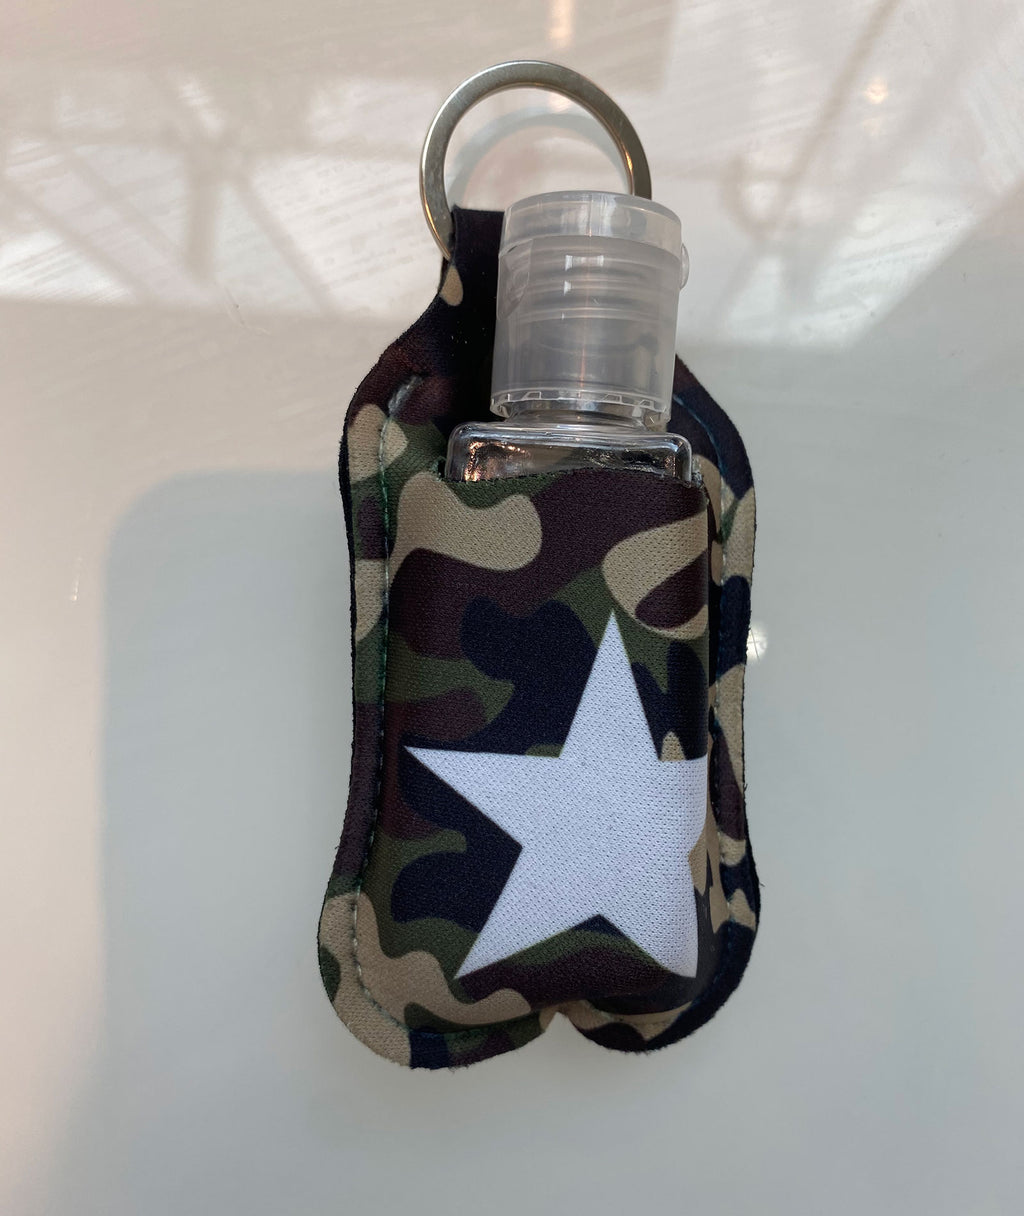 Truly Whimsical Hand Sanitizer Holder Camo Star